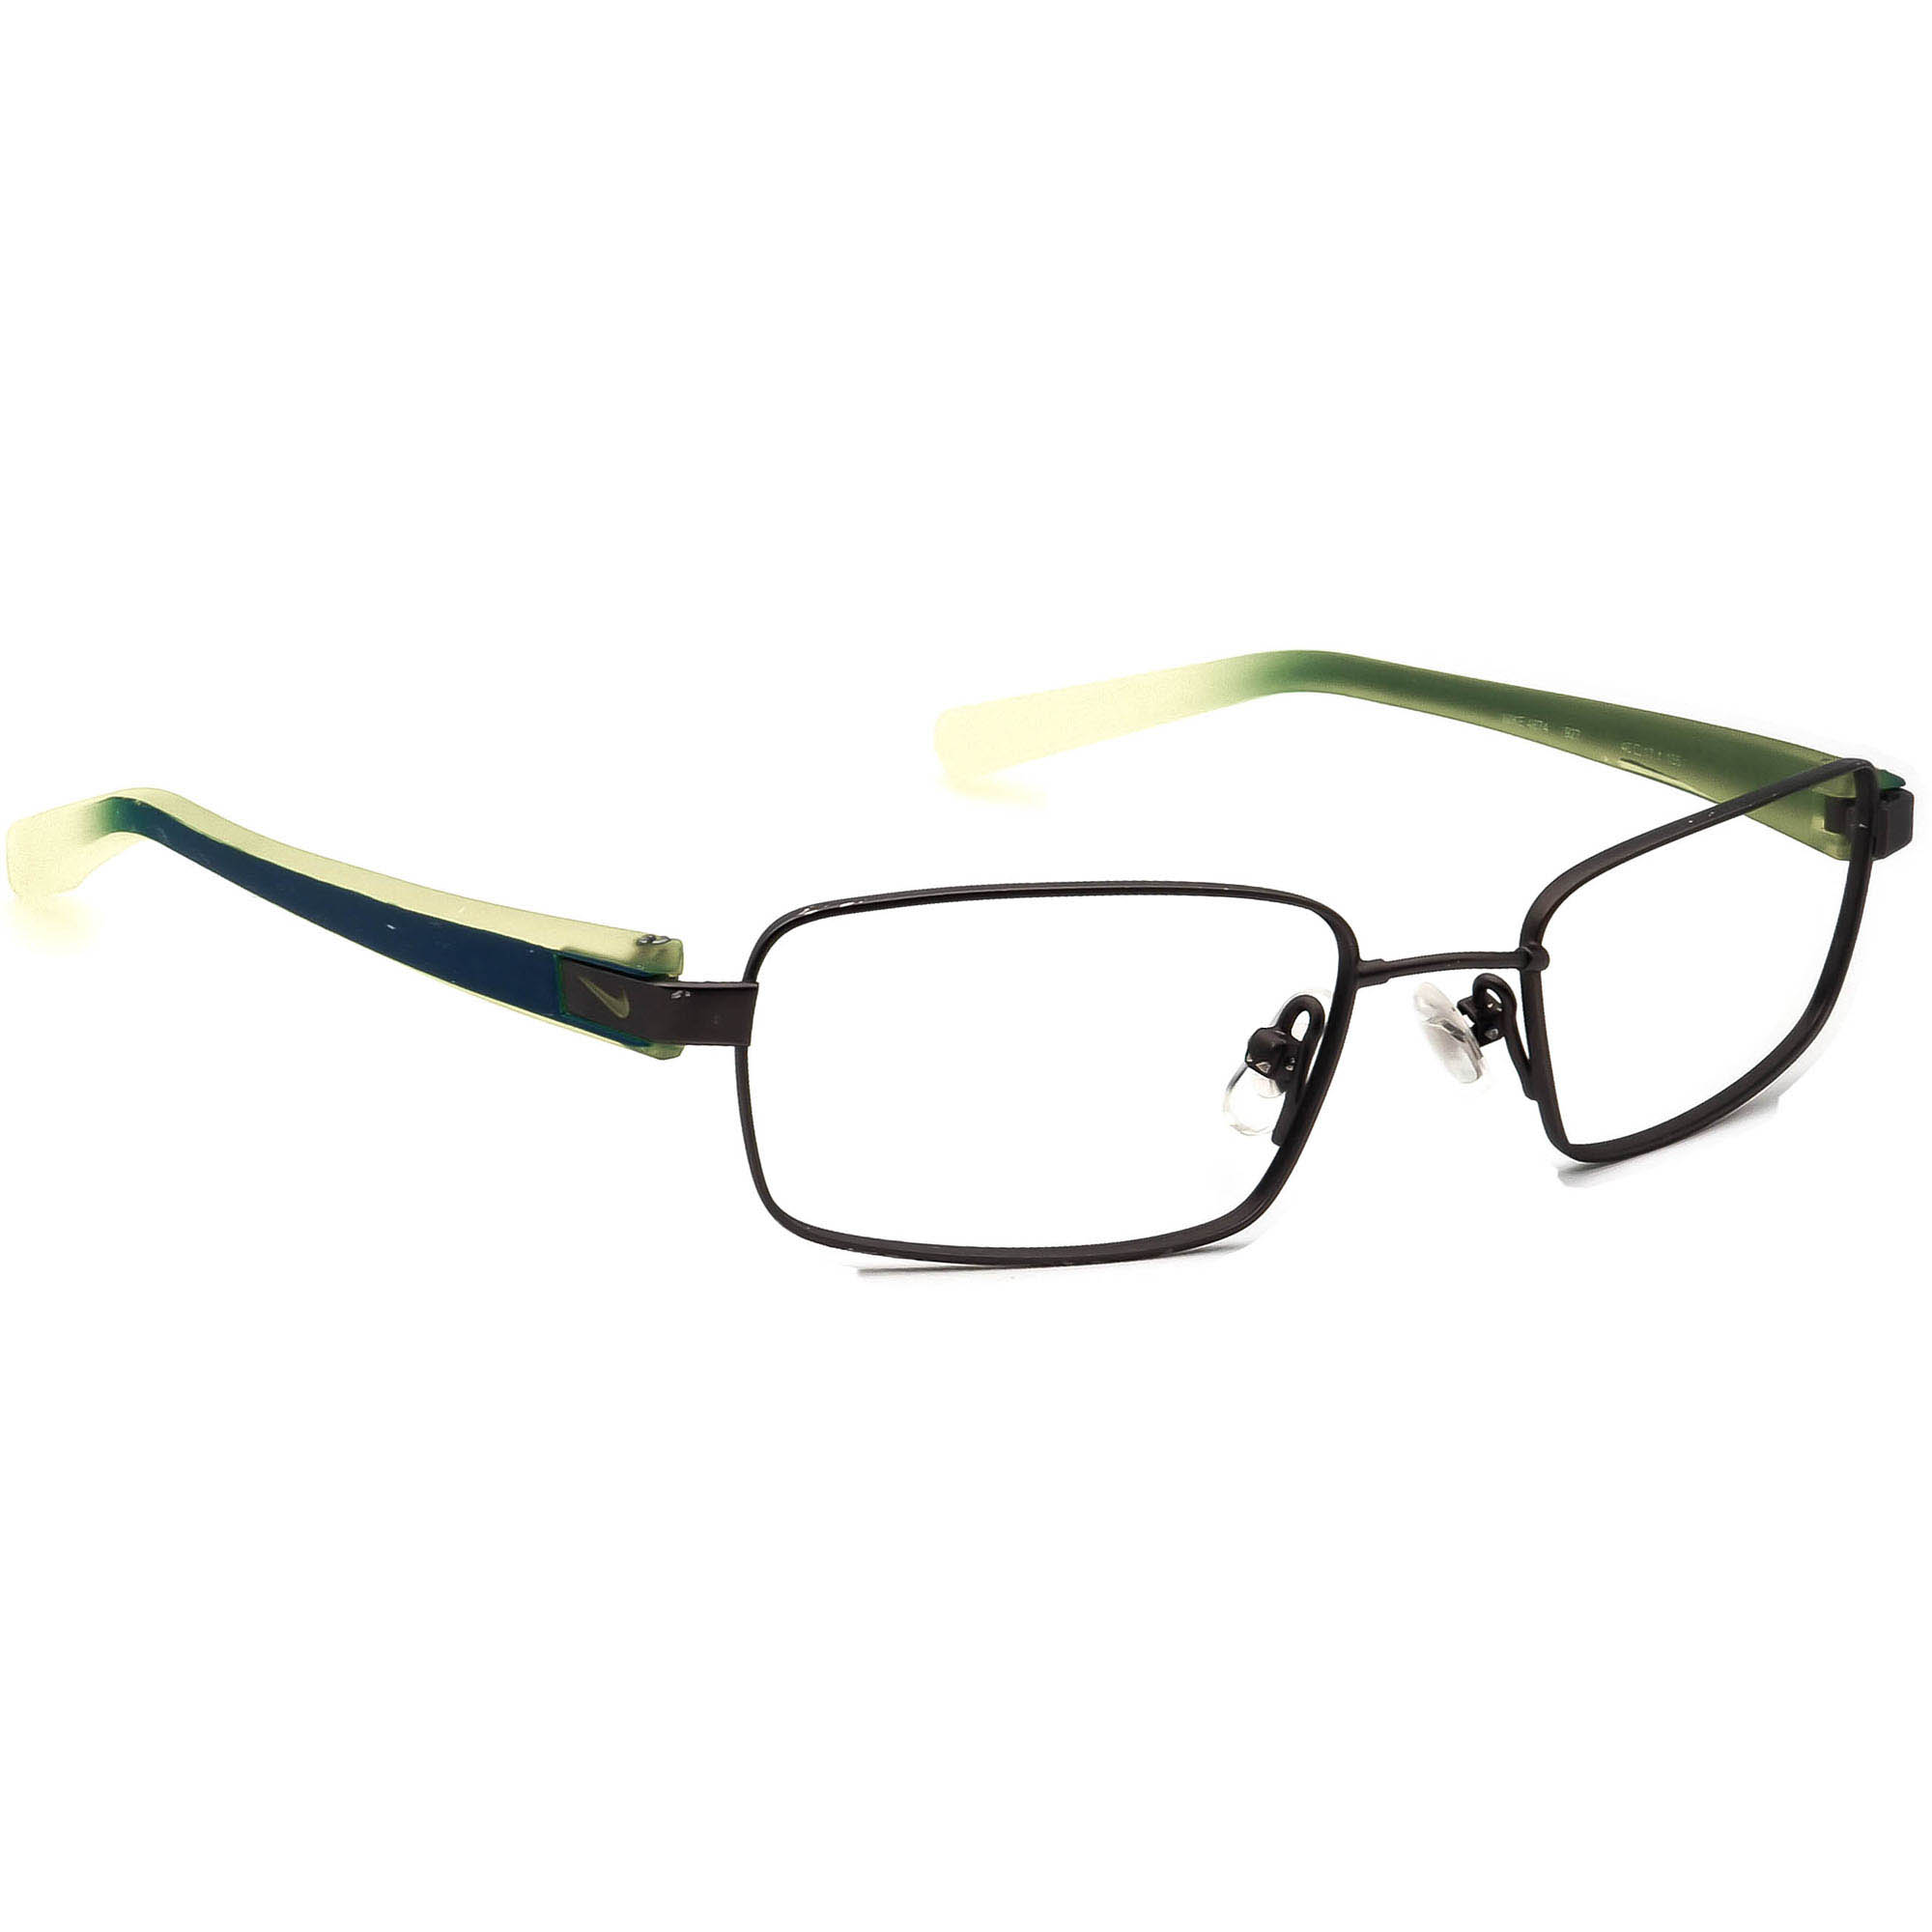 Nike 4674 927 Flexon Bridge Eyeglasses